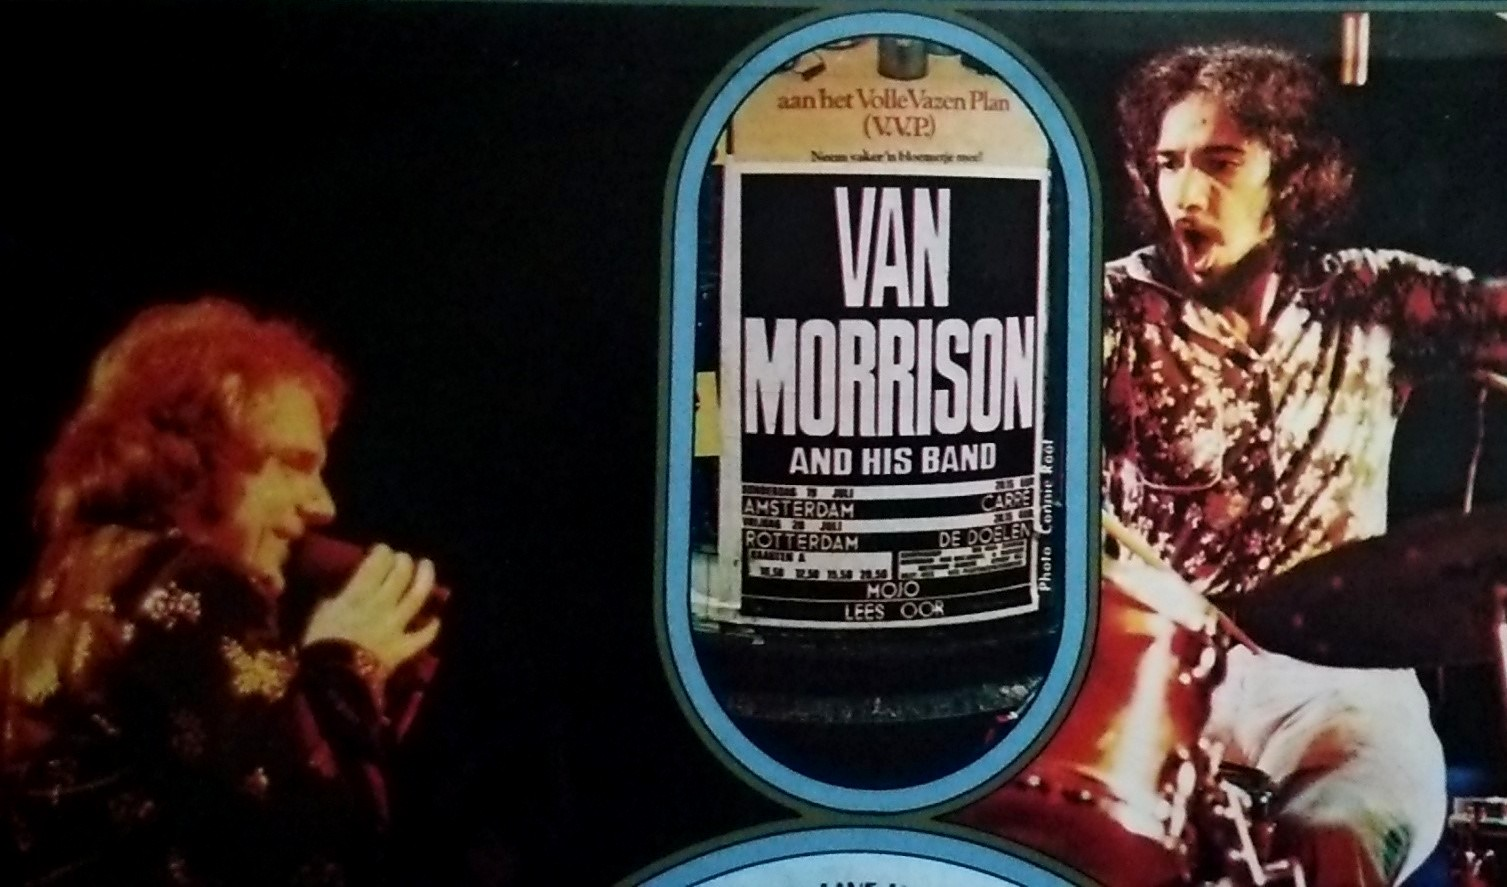 Van Morrison ‎ヴァン・モリソン - It's Too Late To Stop Now 魂の道のり - inside3